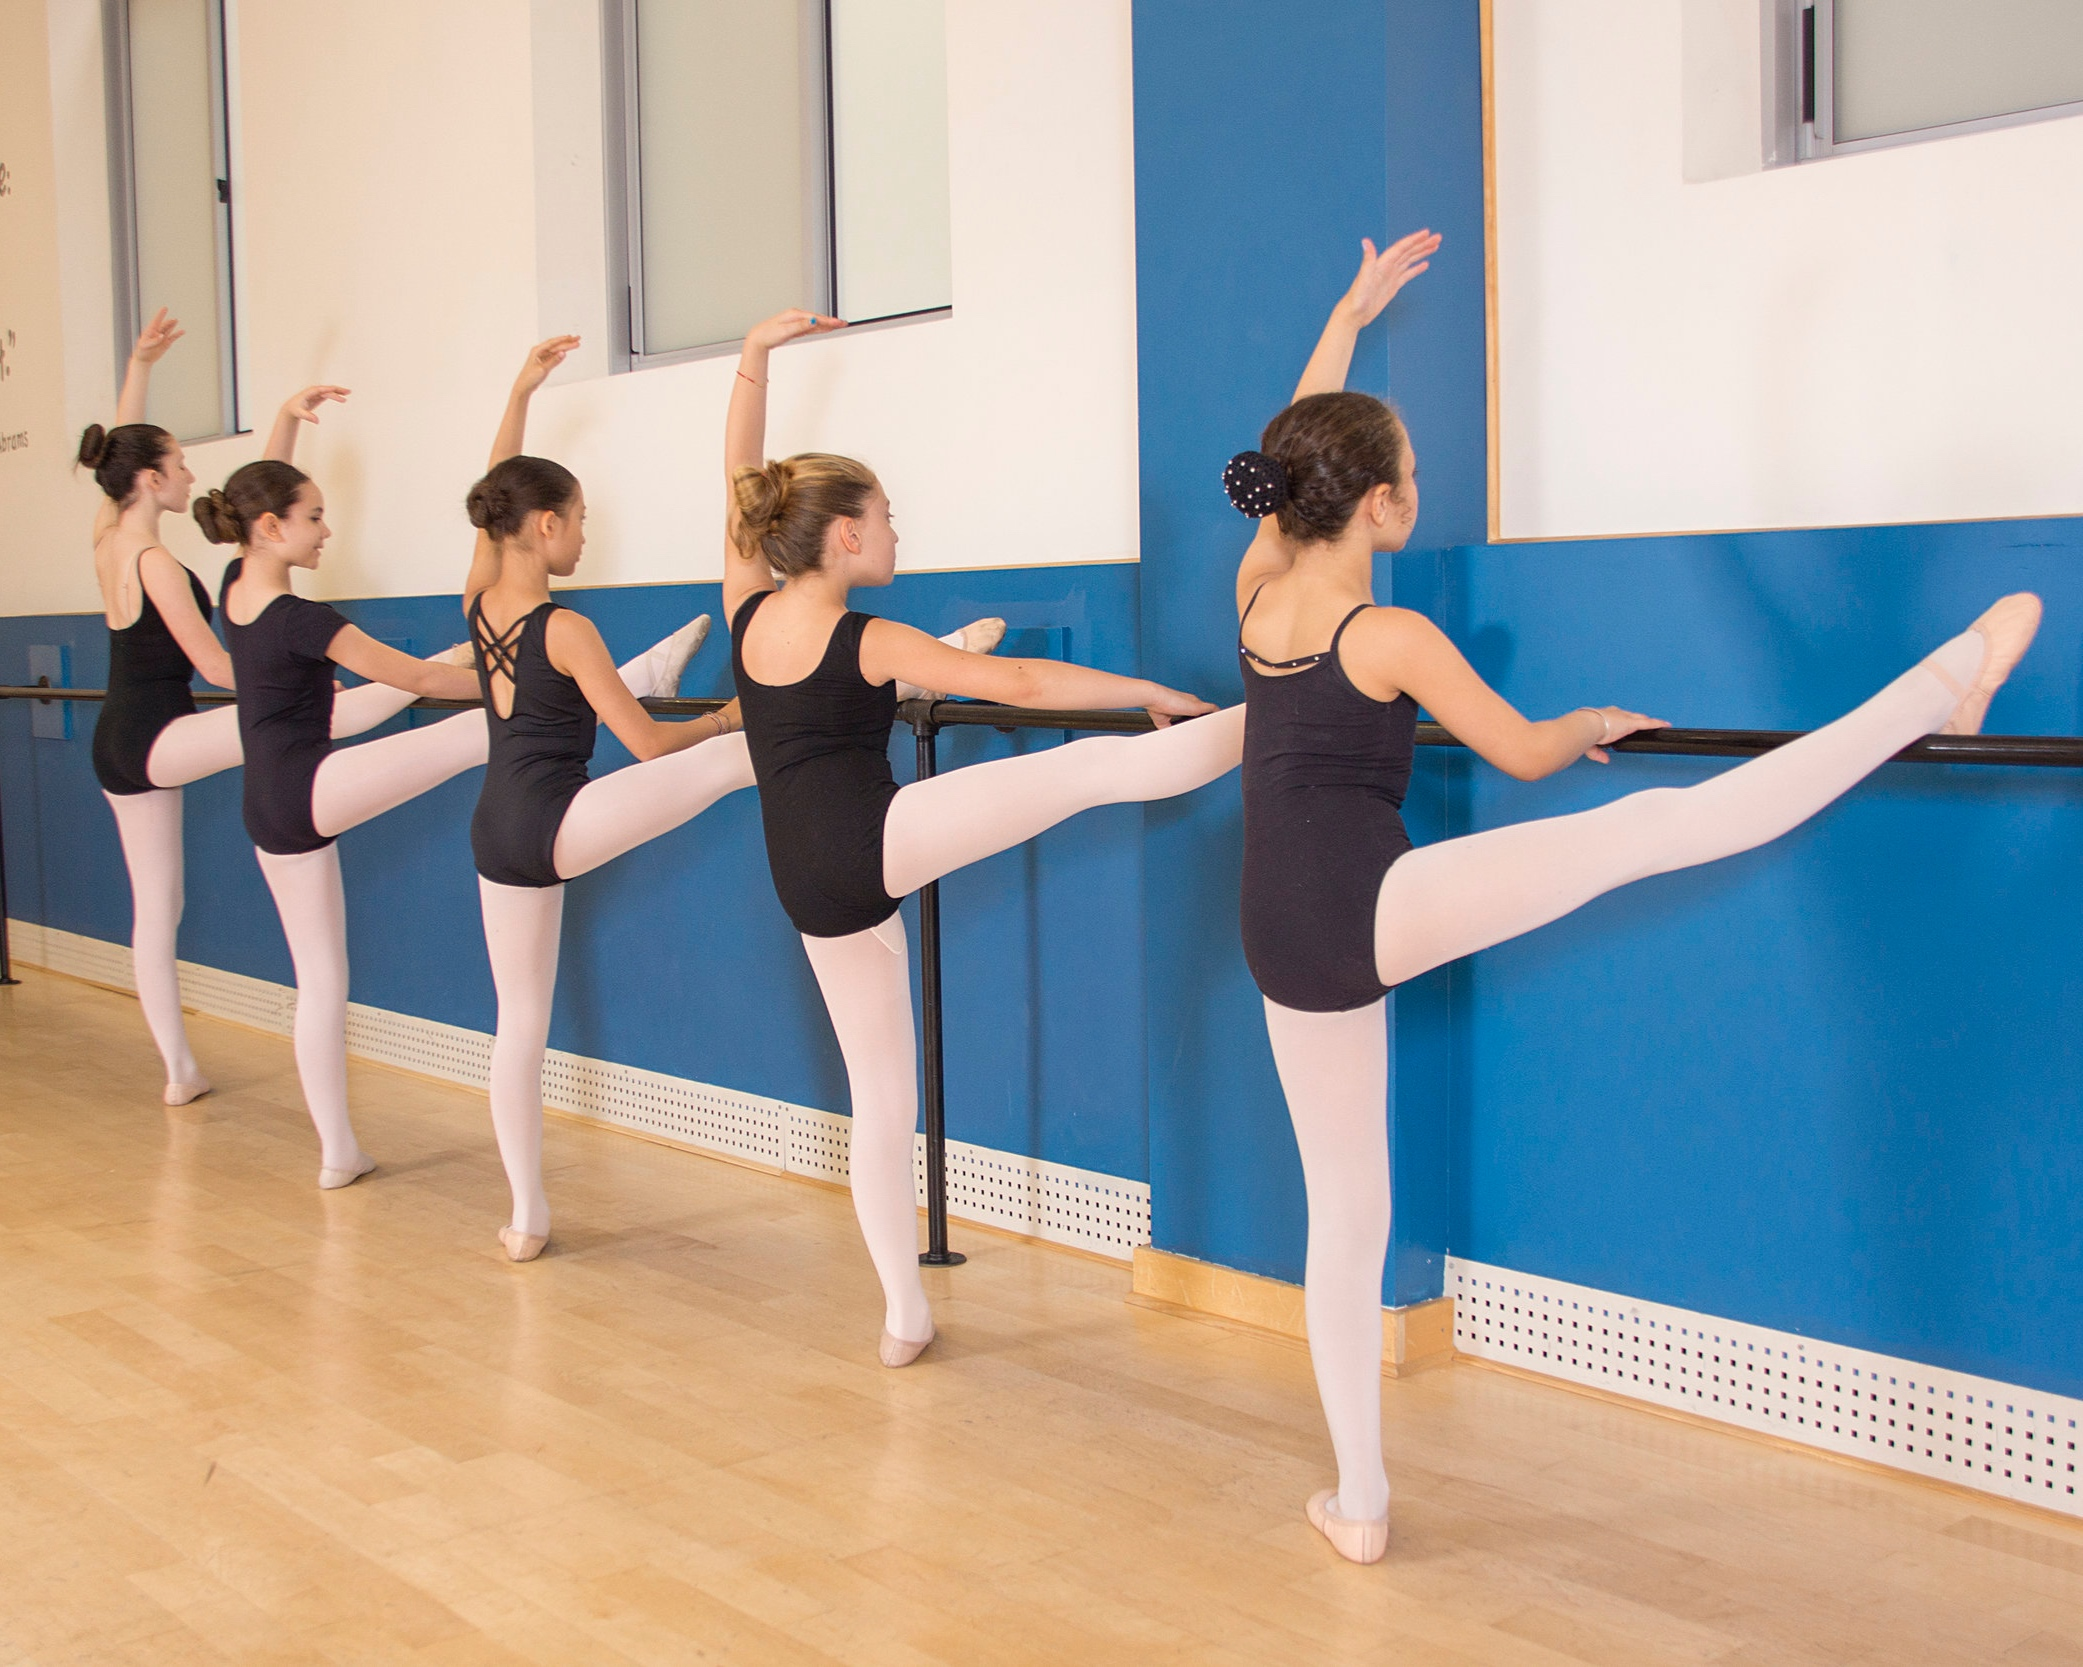 OPEN BALLET - This class will focus on Ballet technique. Twice a week students will go in depth with the technical aspects of Ballet including foundation, specific skills, and dynamics. Open to all levels of dancers ages 7 & up. This class tuition is included as an add on with Ballet 1-4 tuition. This is a non-recital class.OPEN BALLET CLASS ATTIRE : (SAME AS BALLET 1,2,3,4)